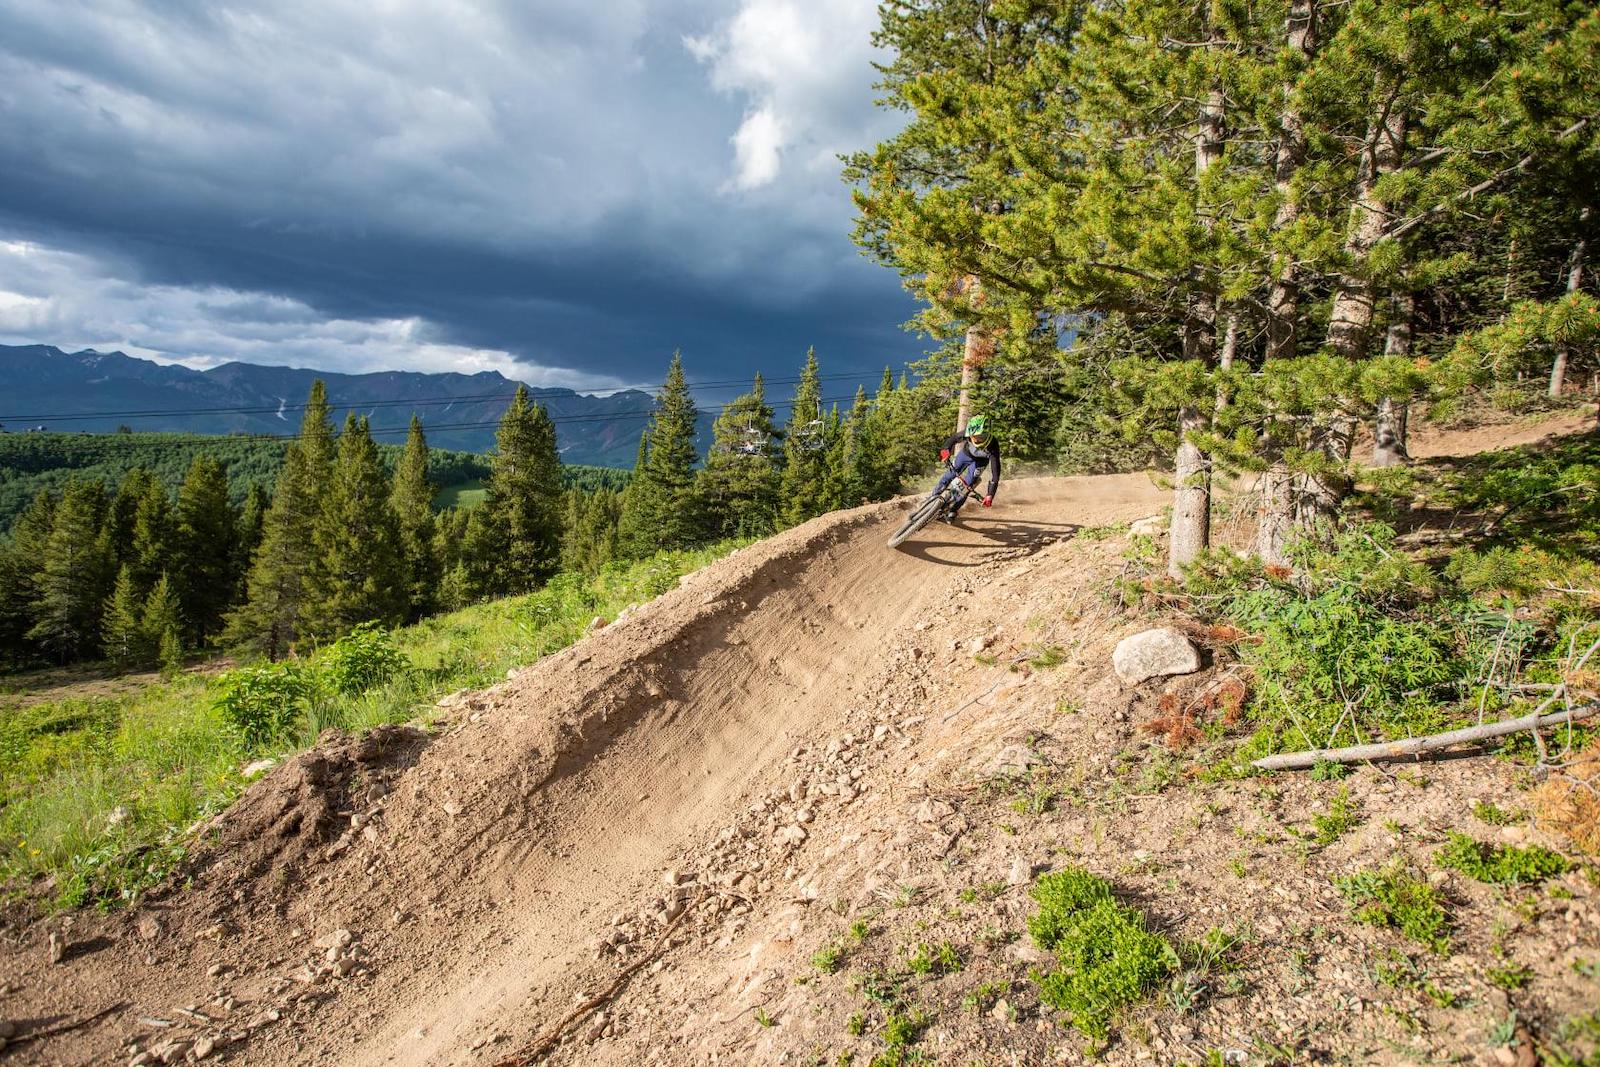 Image of a person mountain biking at Crested Butte Ski Resort in Colorado